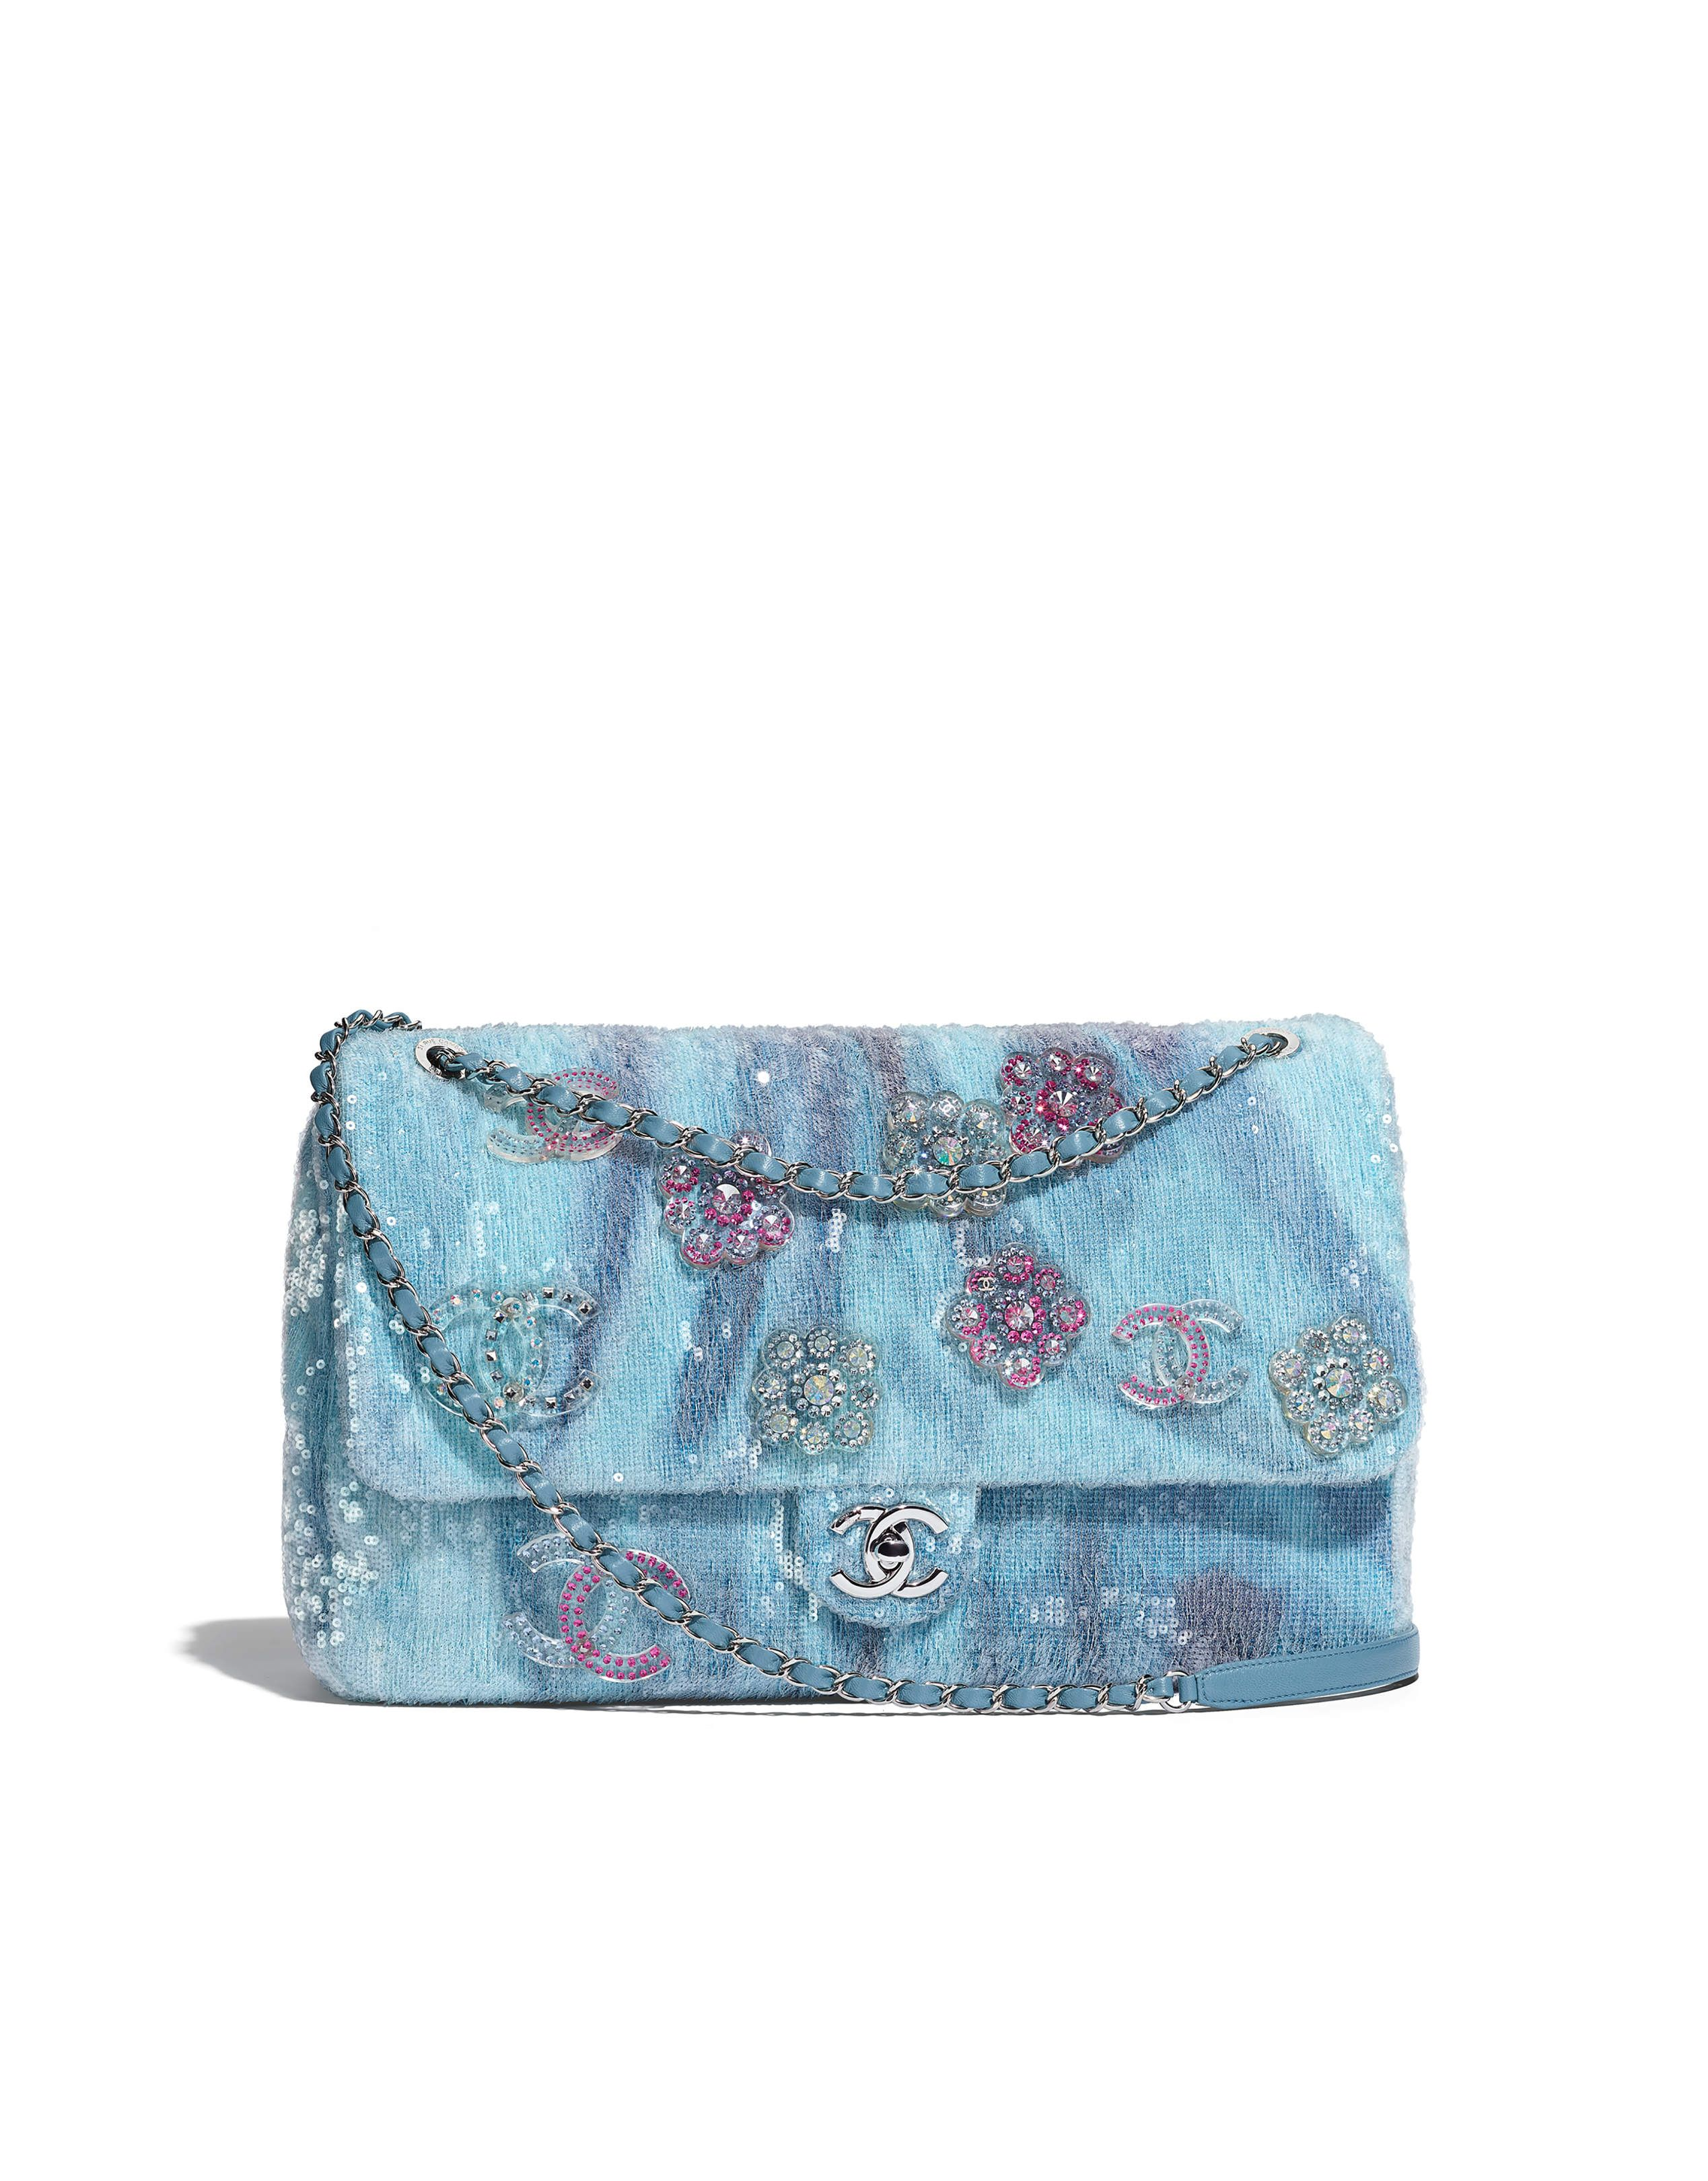 30afe9fa79e6 Chanel - SS2018   Light blue, blue & turquoise sequin charm flap bag ...